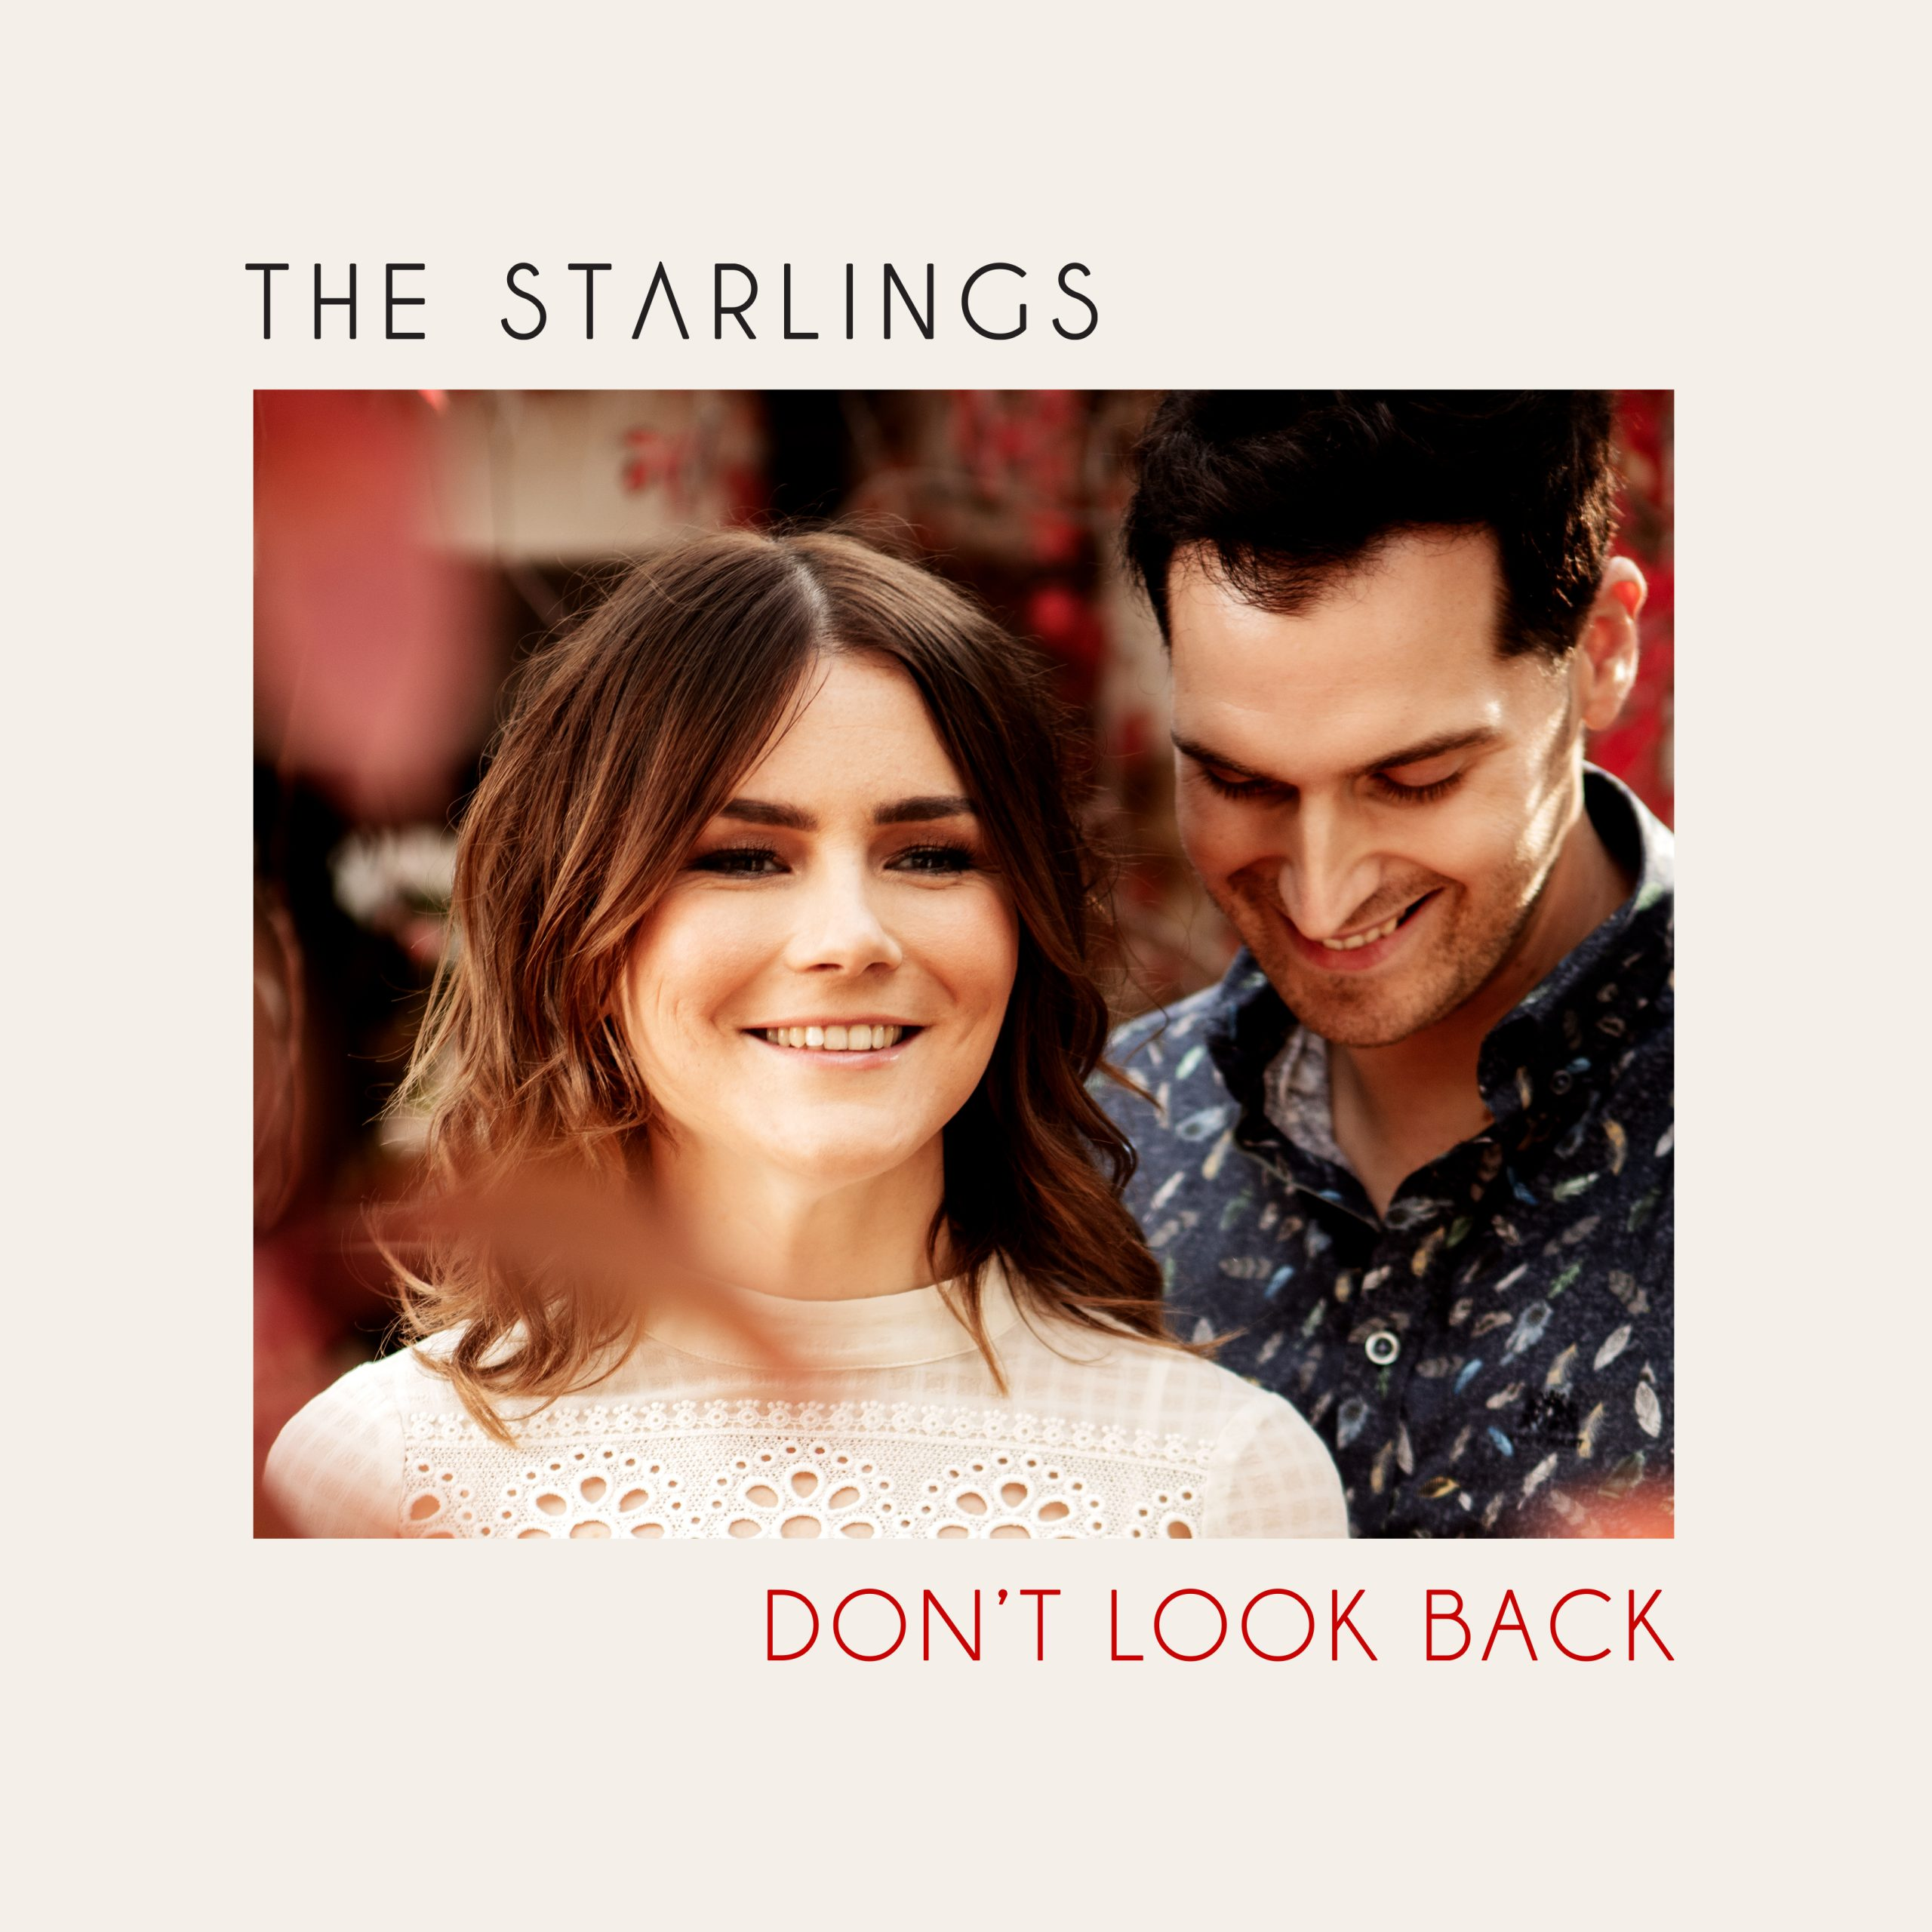 Cover-The Starlings-Dont look back